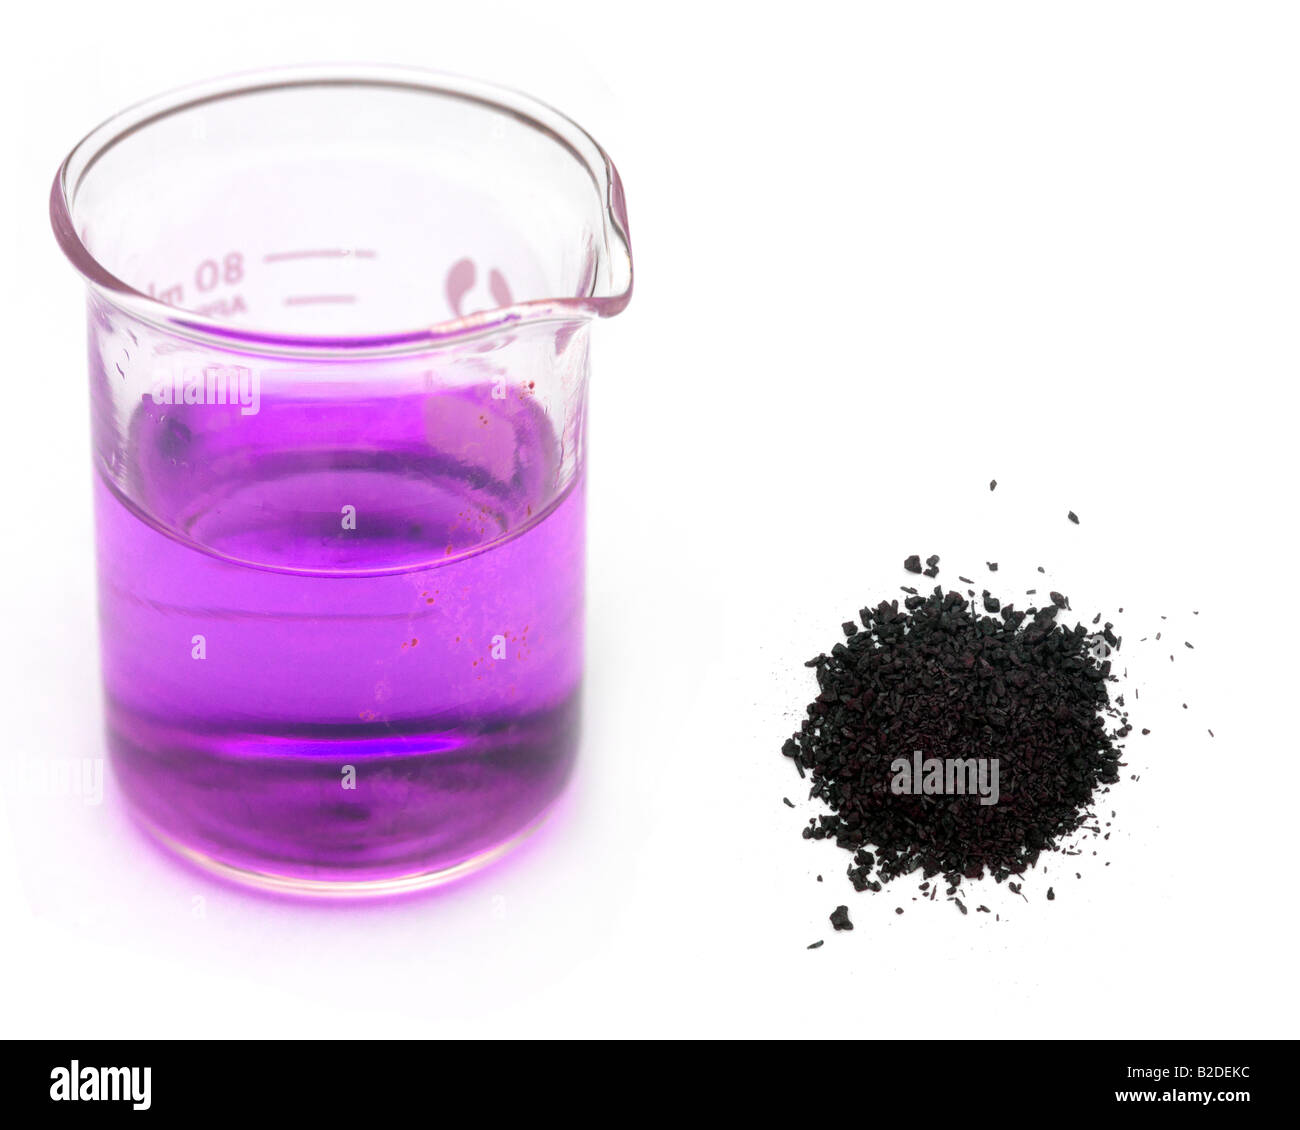 Potassium Permanganate Stock Photos Potassium Permanganate Stock